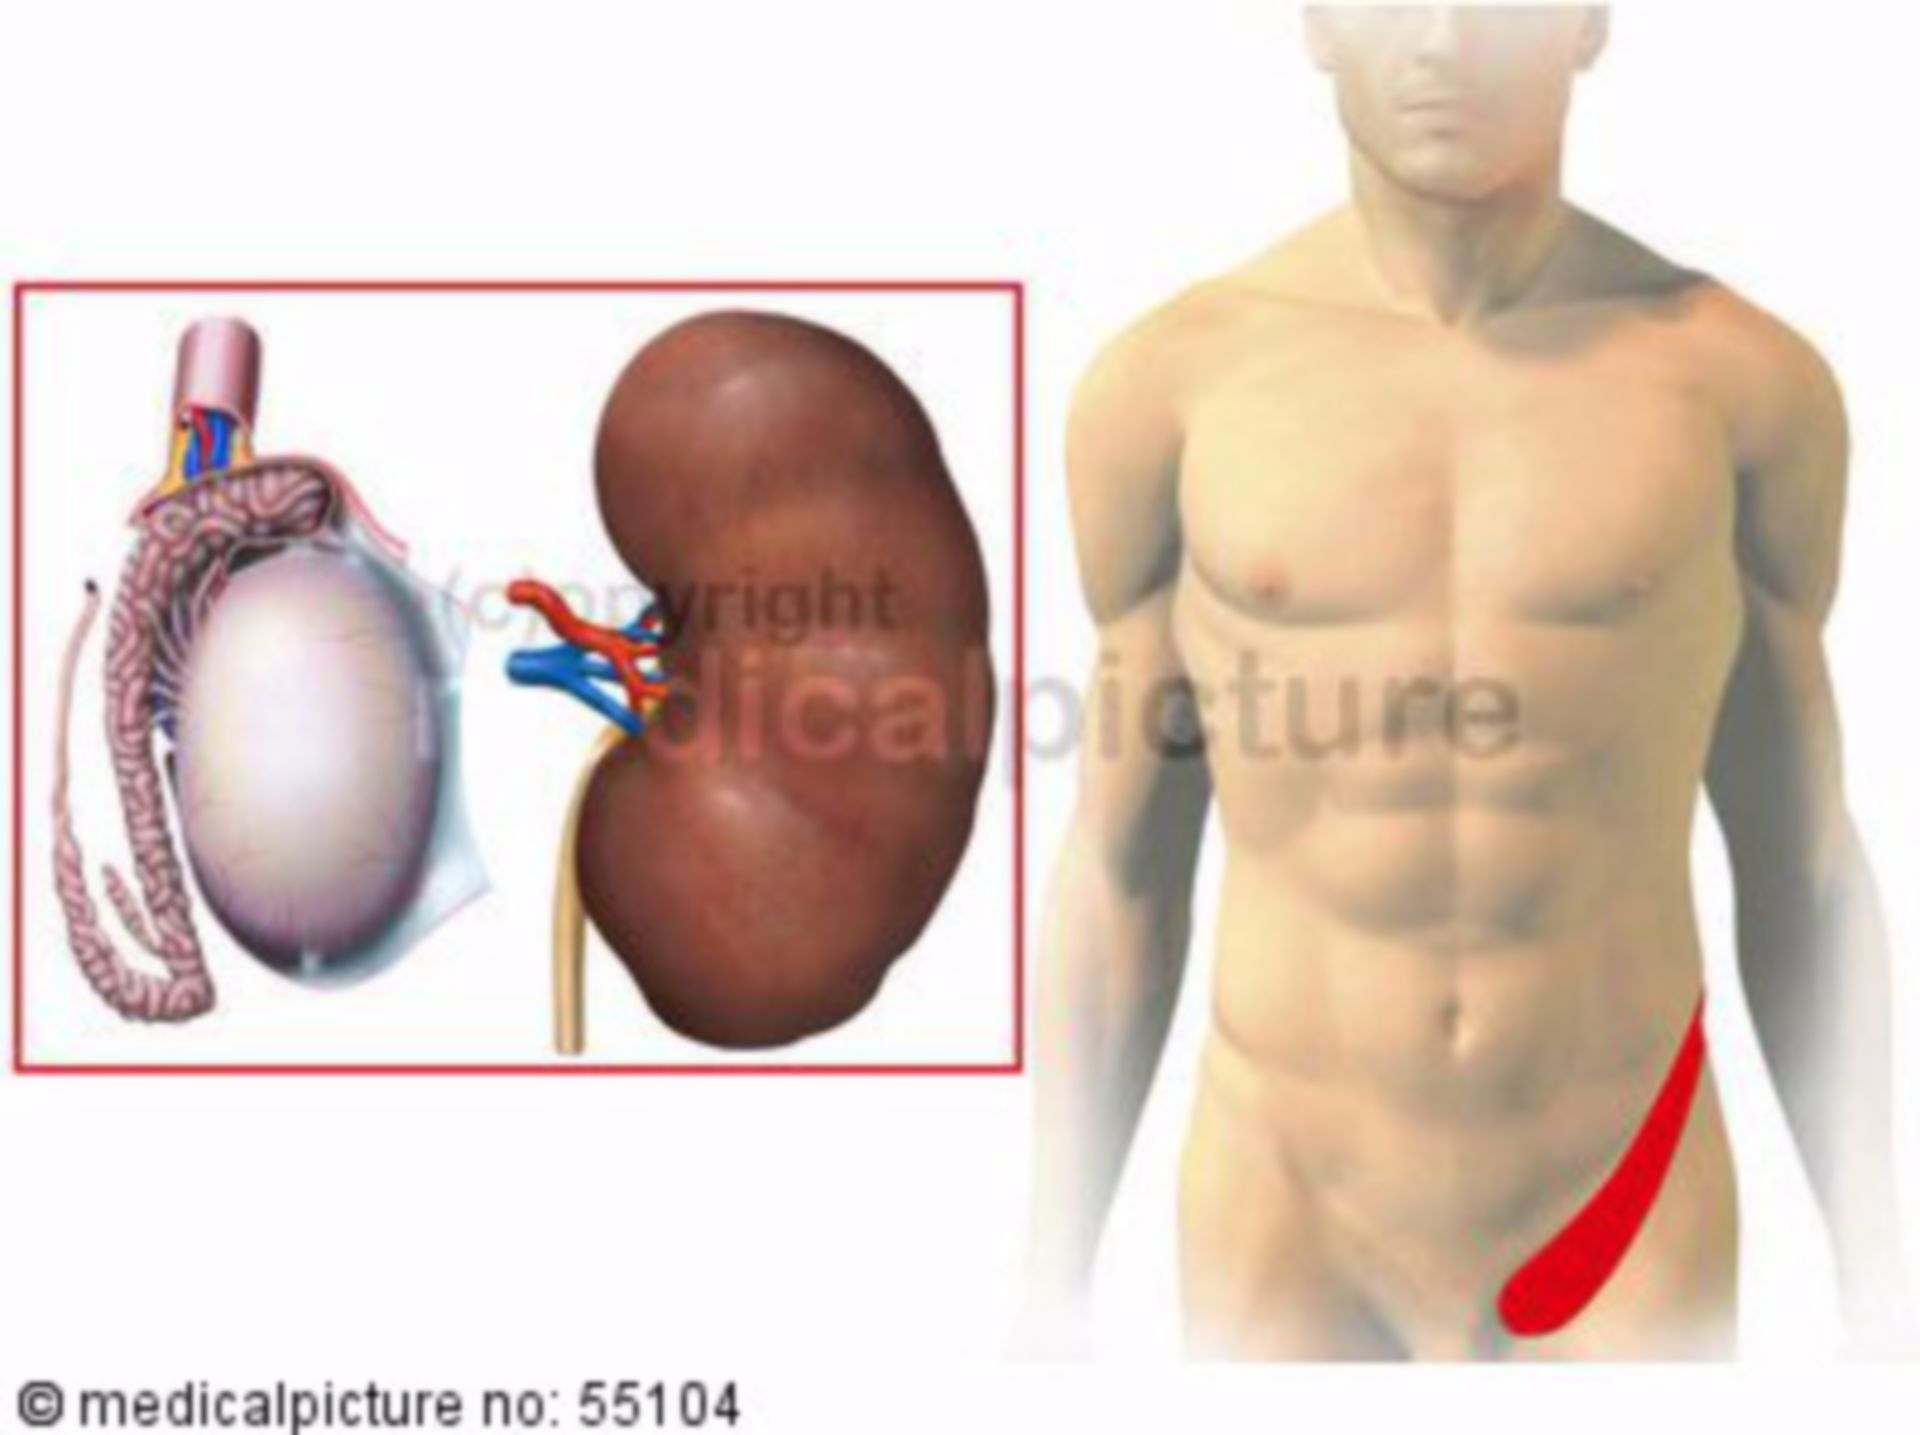 Kidney and testis: zones of referred pain